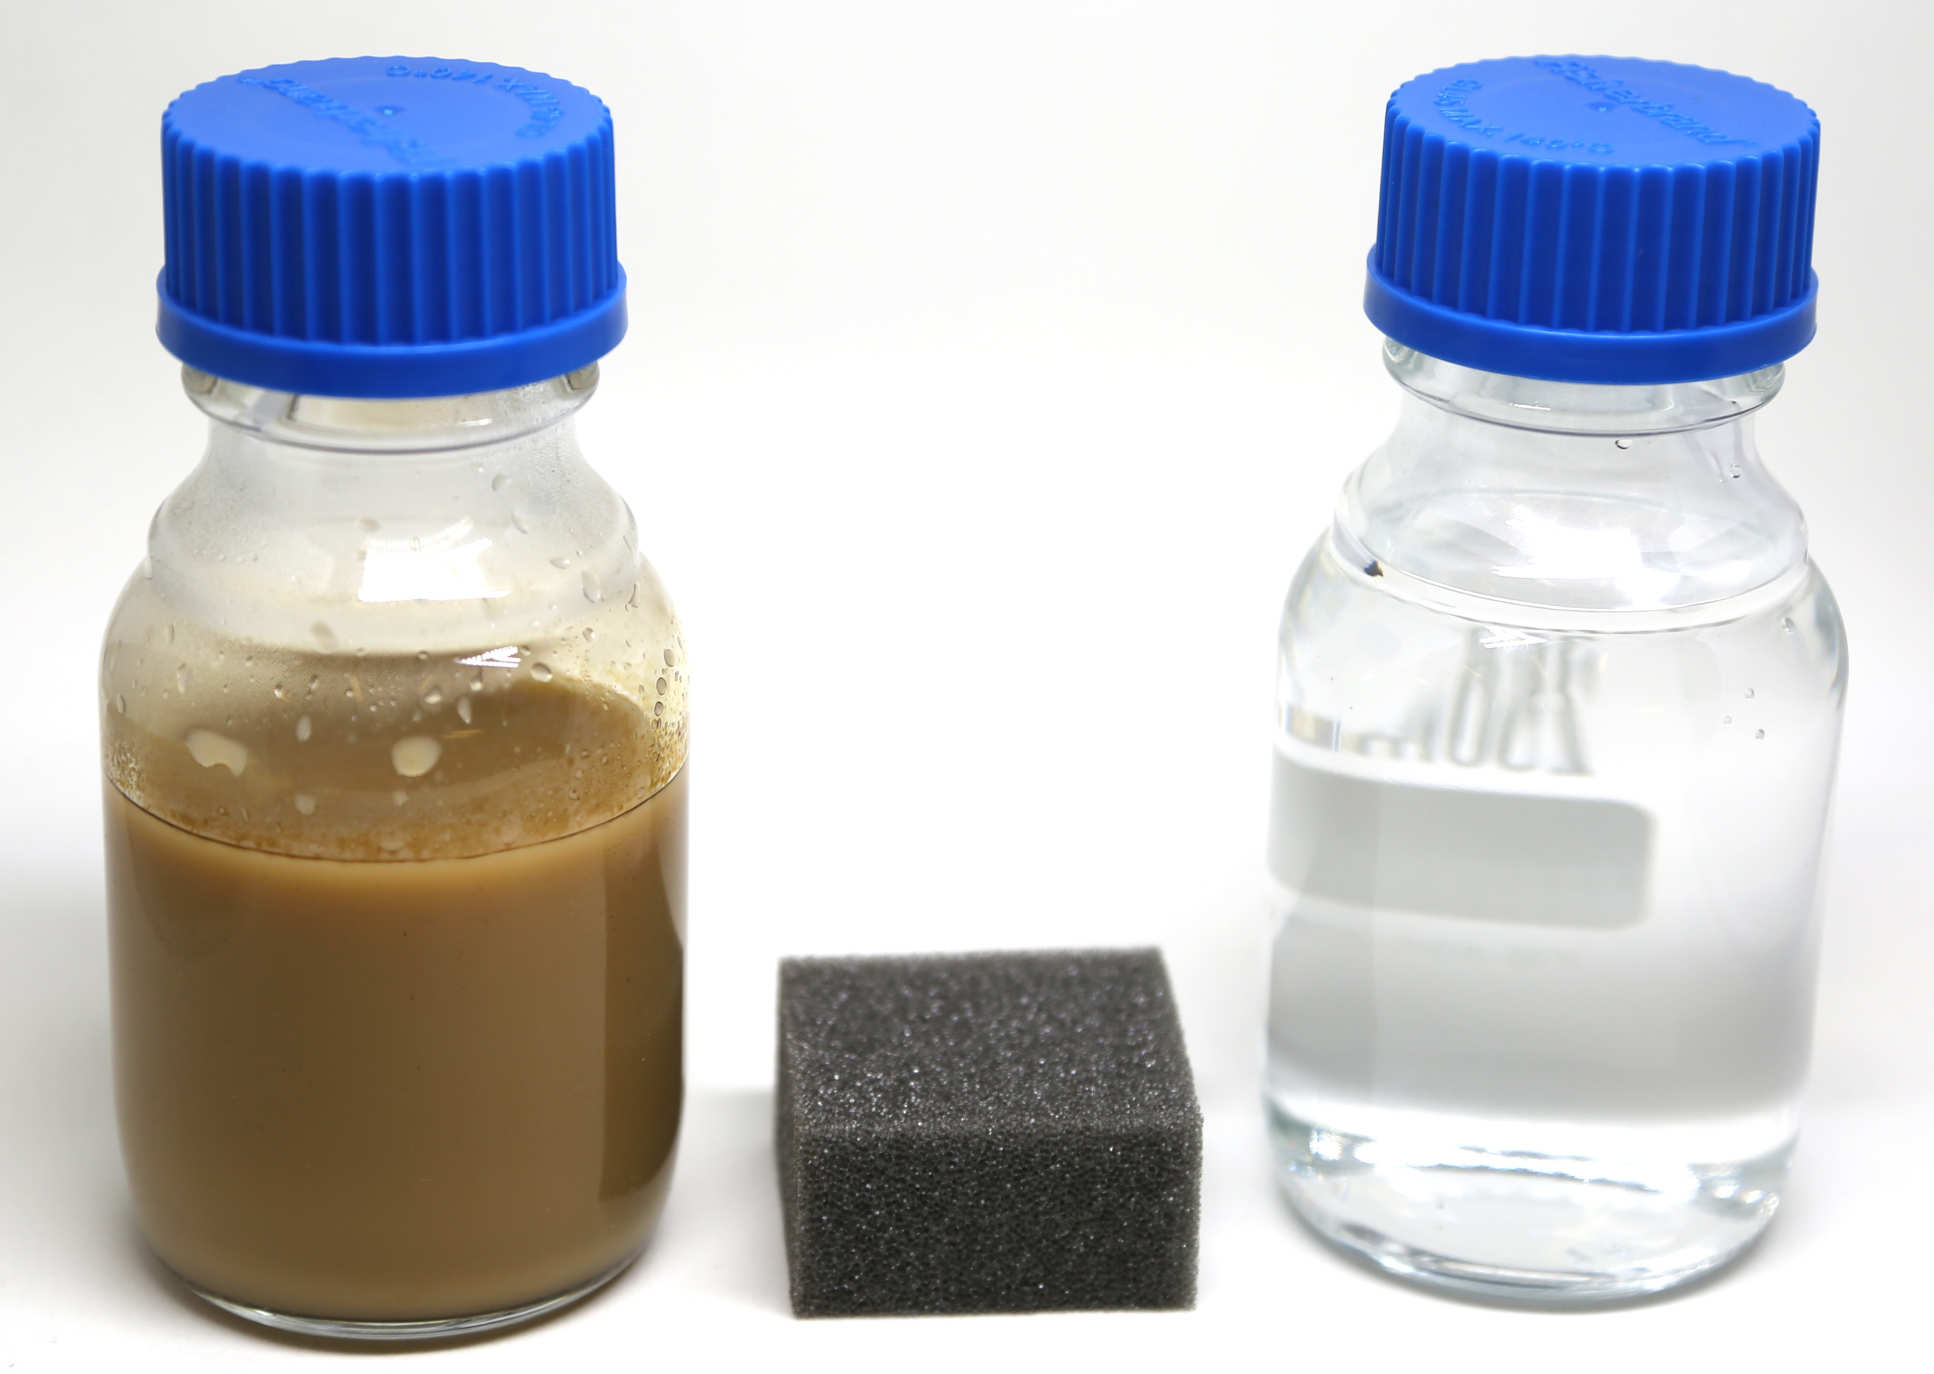 Photo of two bottles - one containing brown liquid, the other containing clear liquid. Between the bottles is a small black sponge.